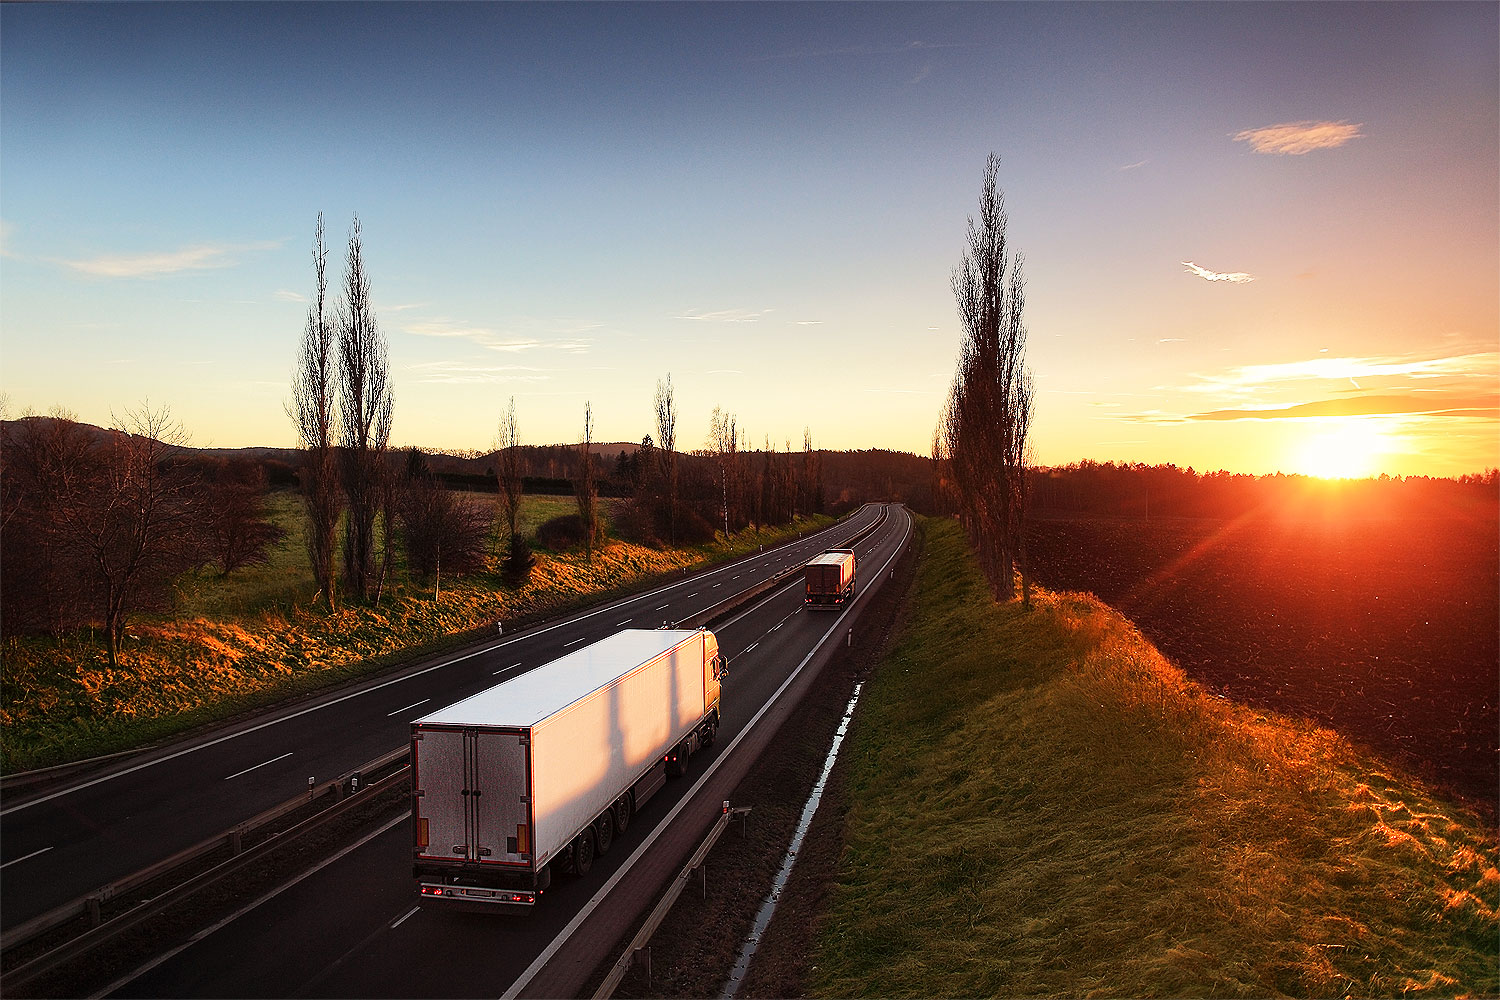 http://oconnorscarrying.com.au/wp-content/uploads/2017/04/freight-2.jpg